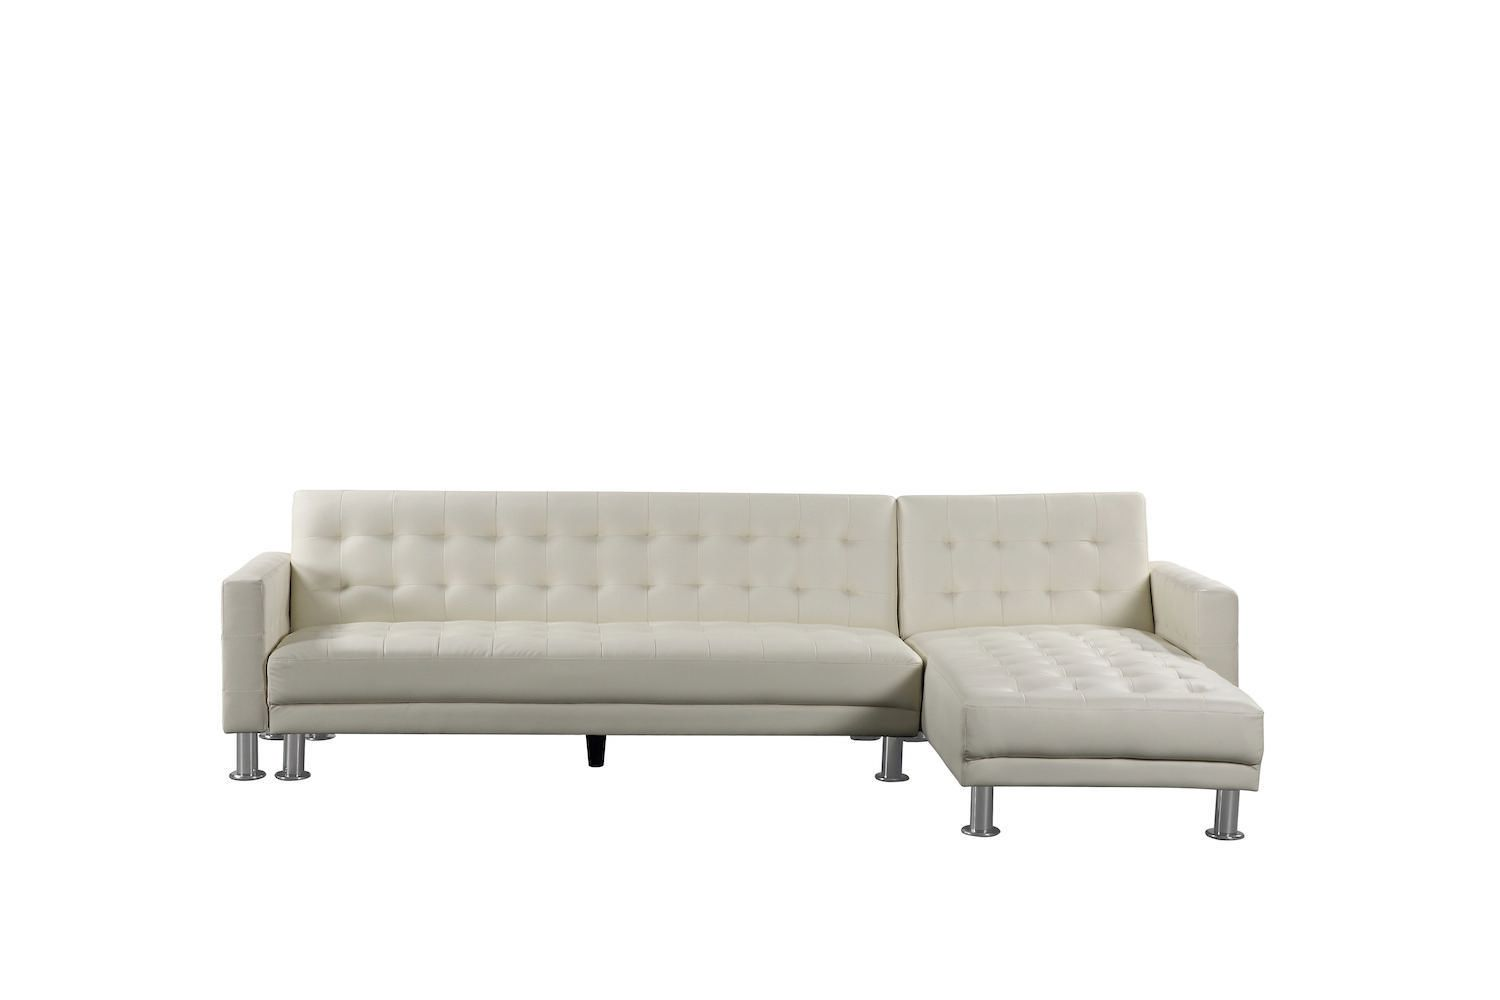 - Velago Attalens Adjustable Faux Leather Sectional Sleeper Sofa